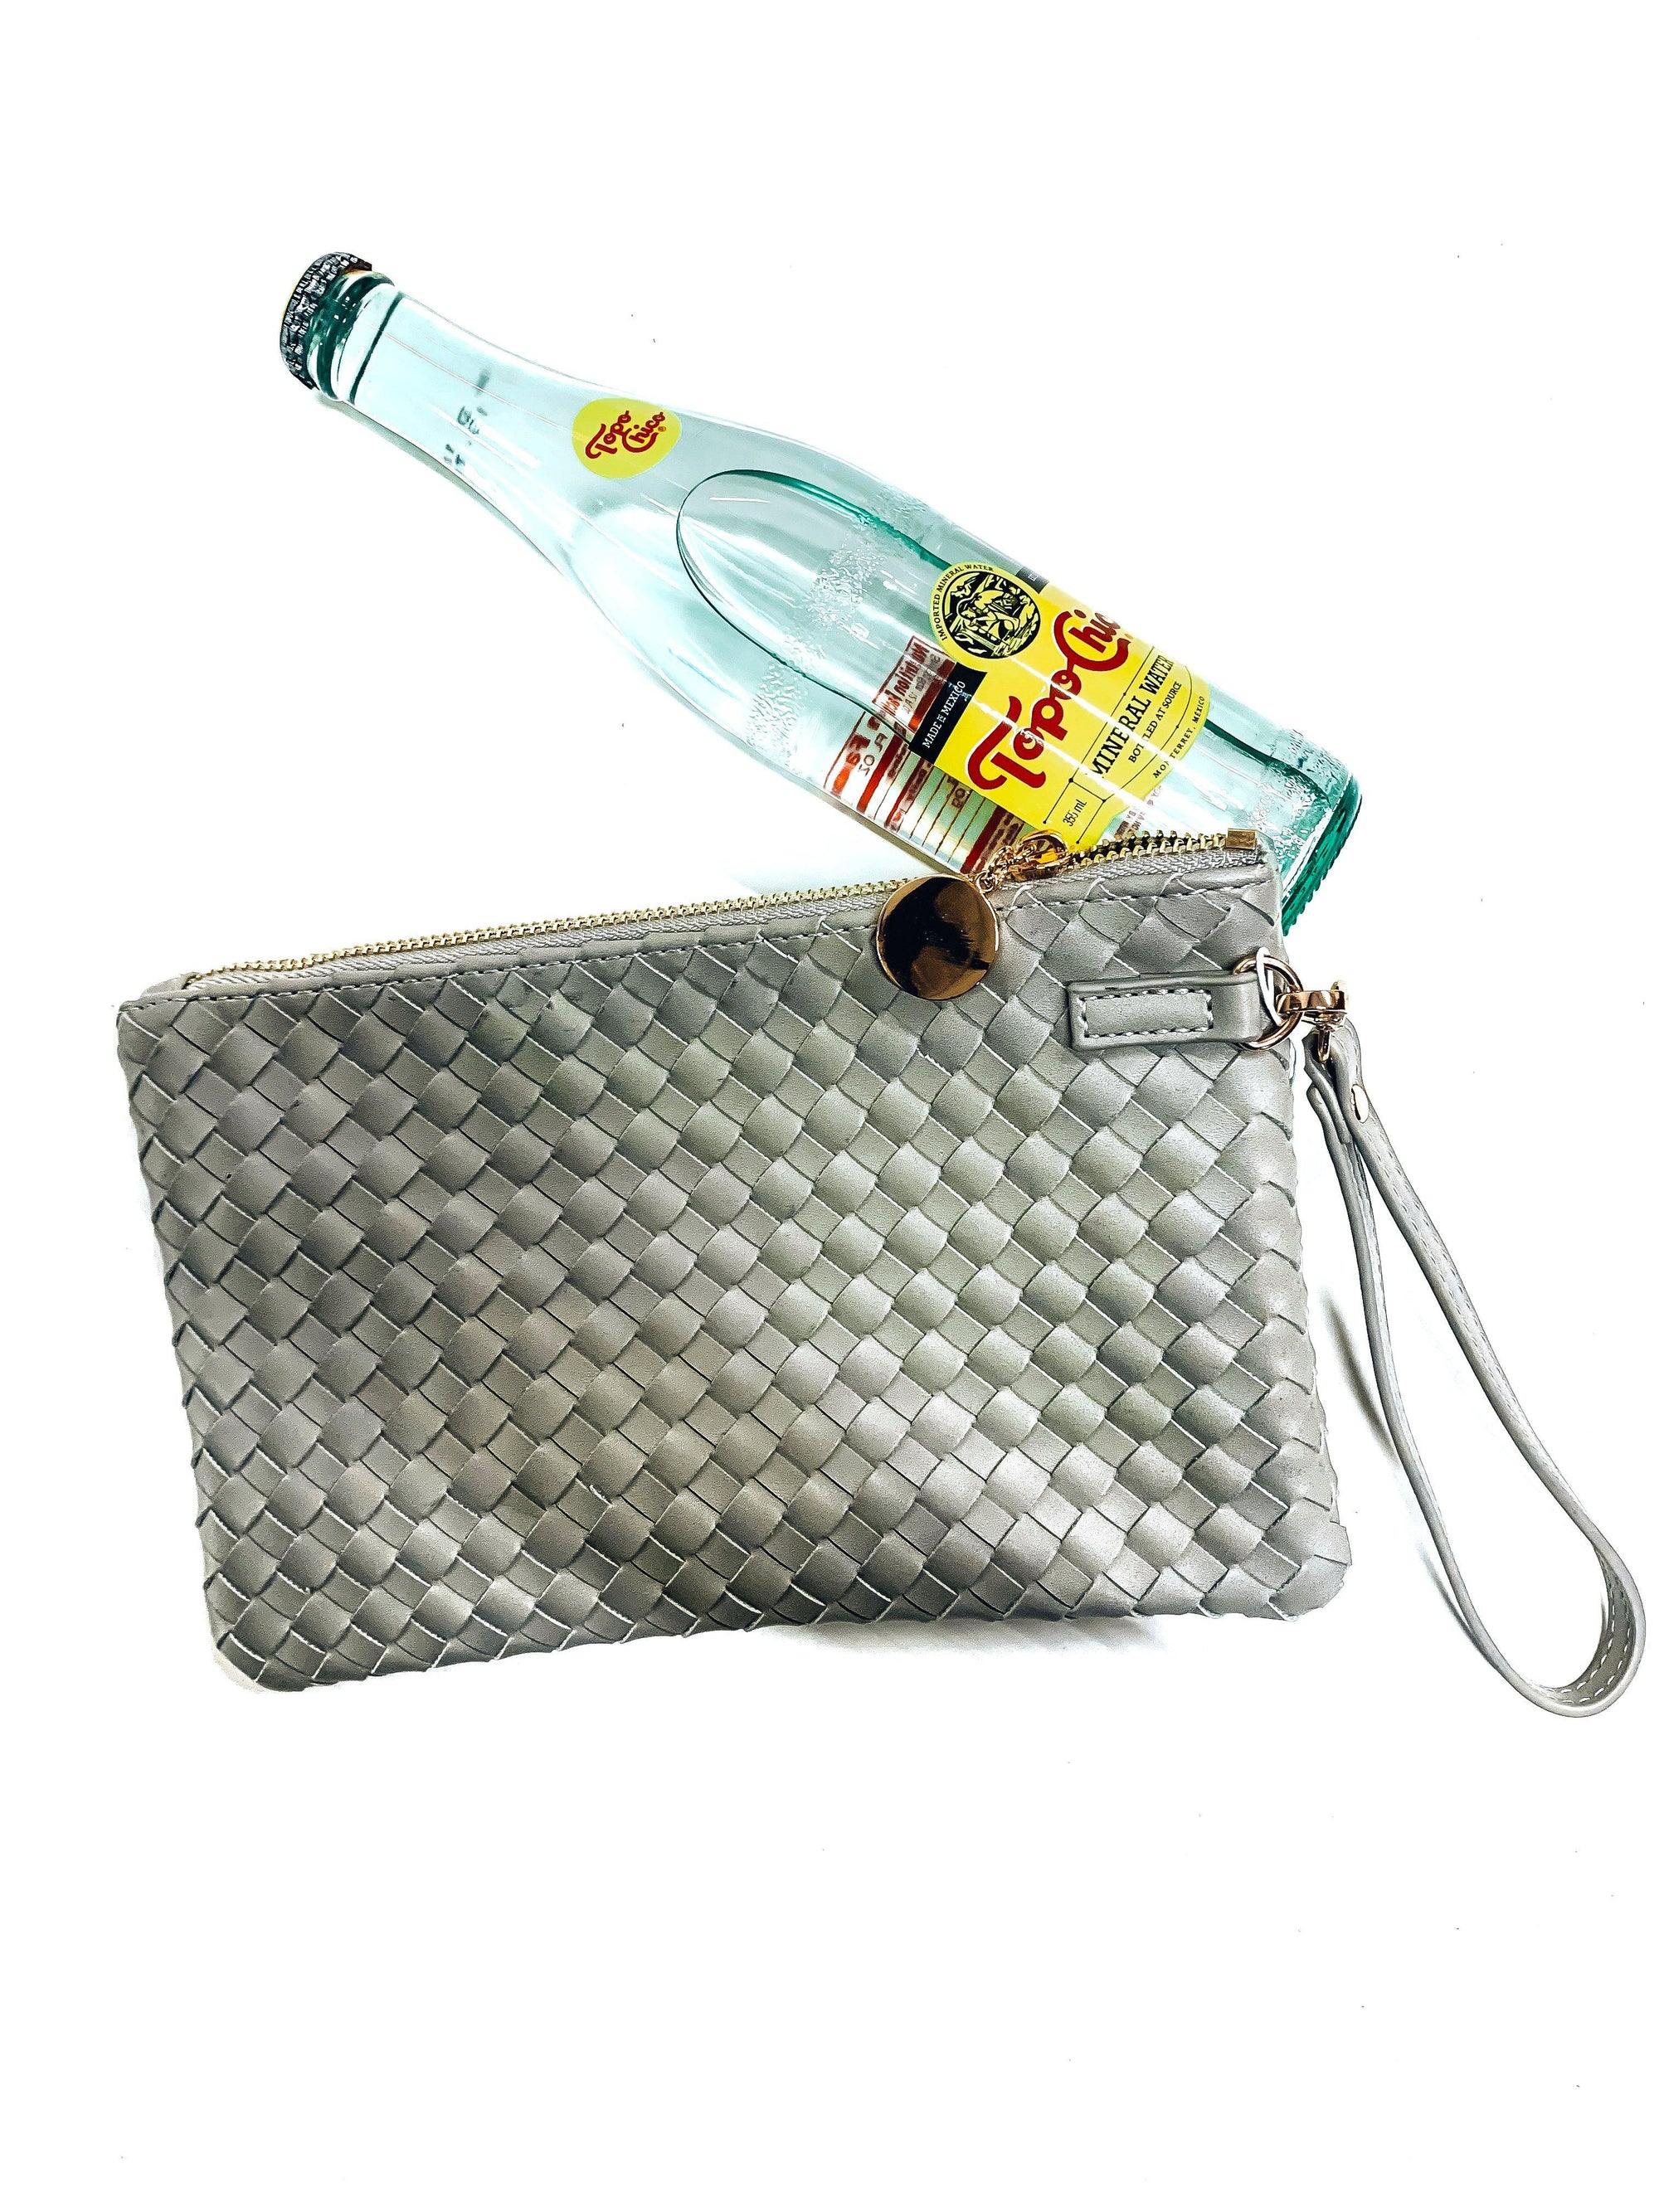 Stay In Your Lane Clutch-Women's ACCESSORIES-New Arrivals-Runway Seven